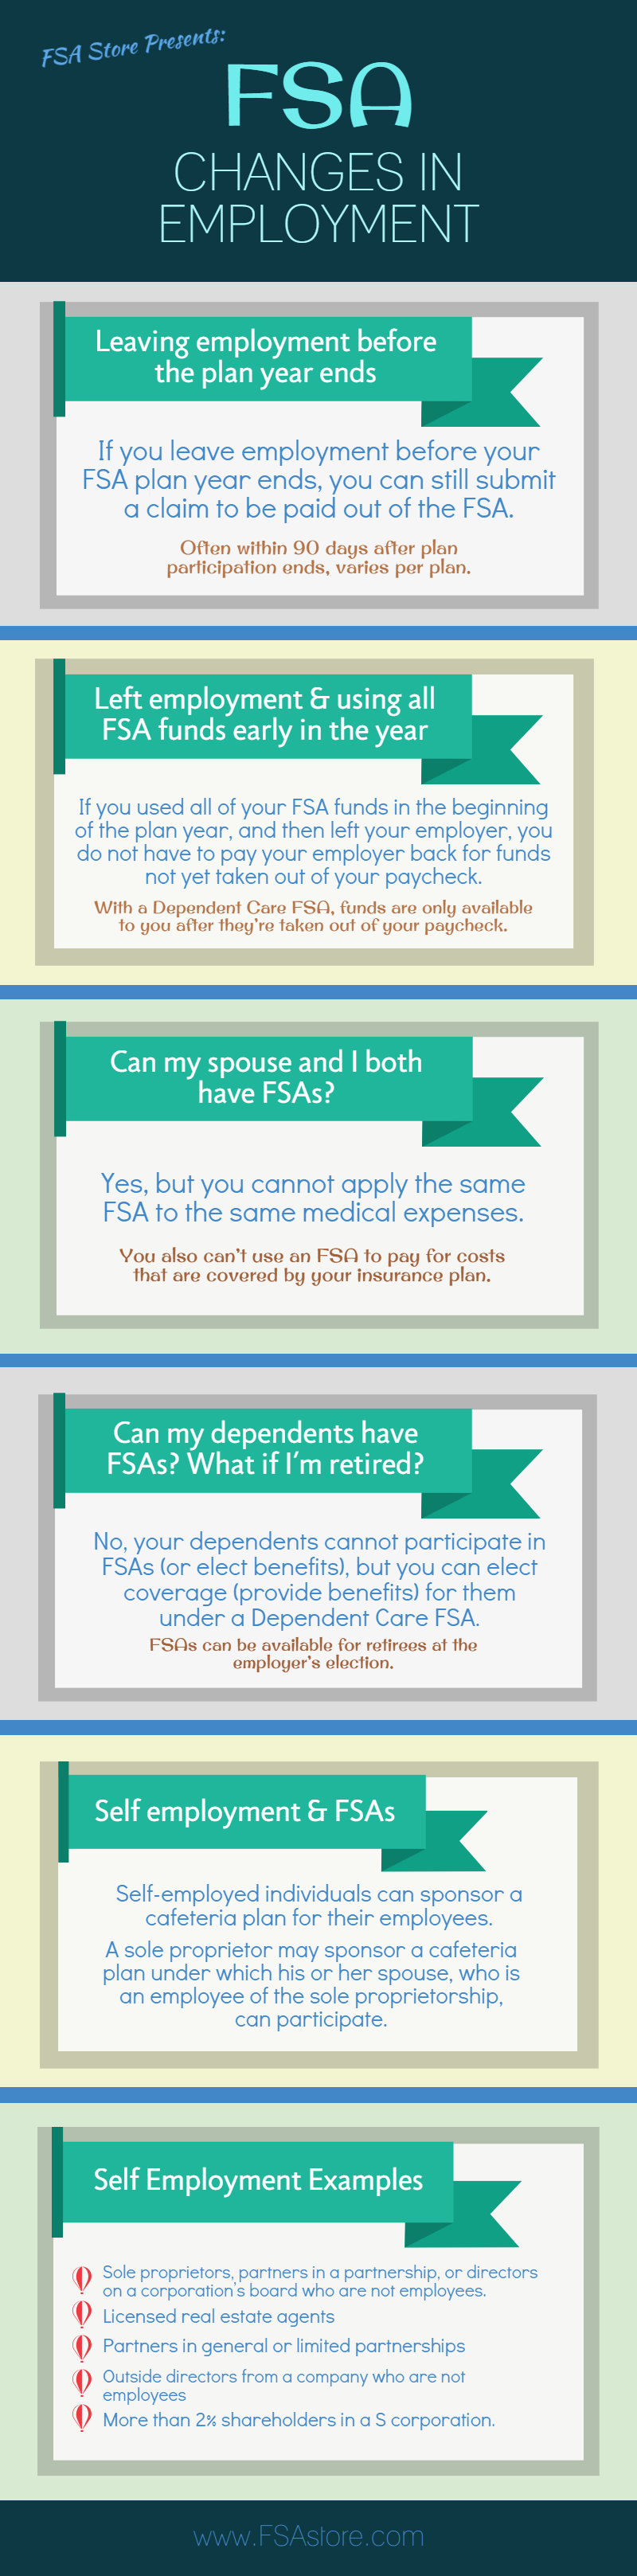 FSA Changes in Employment.png